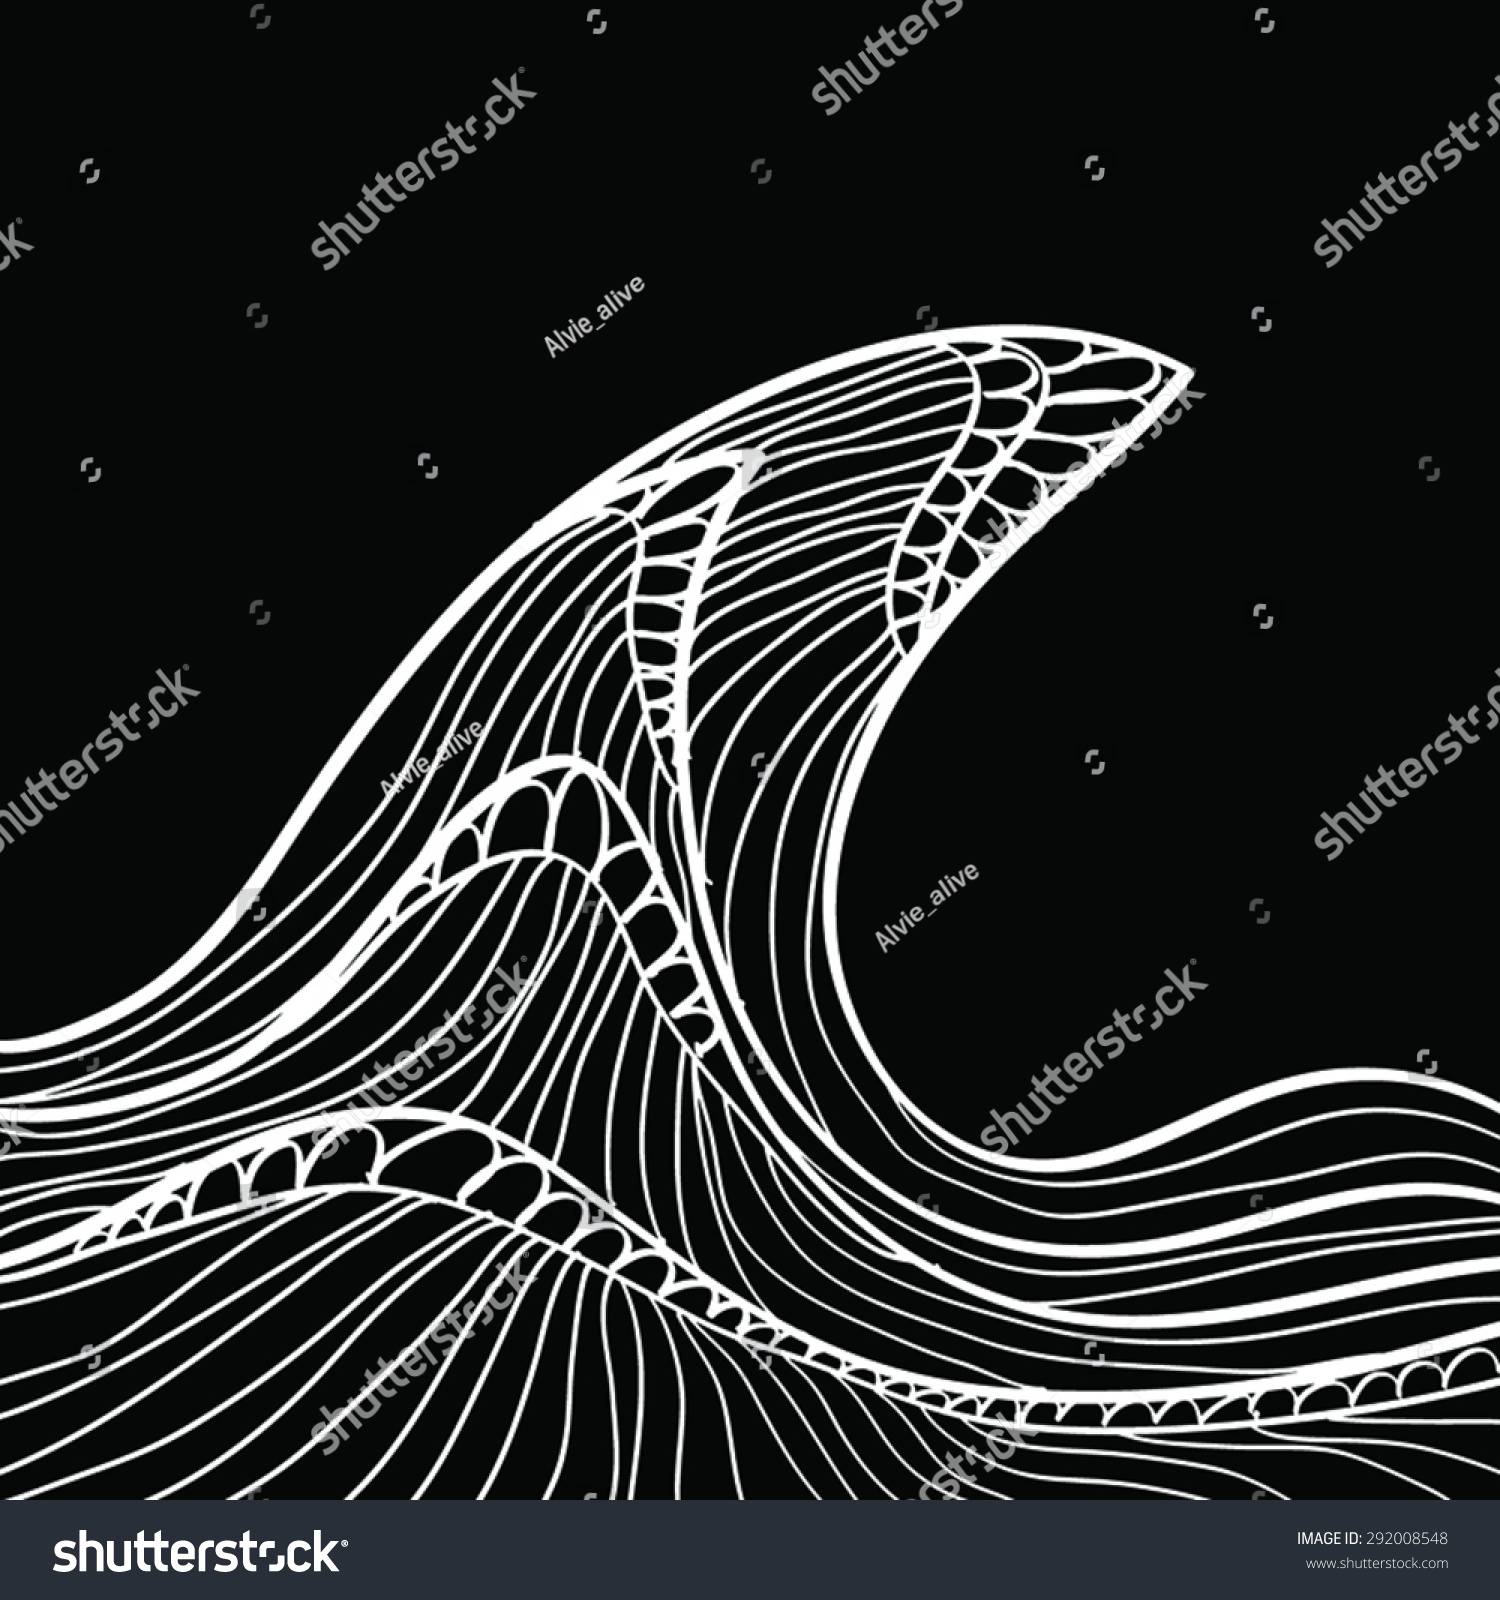 Graphic Wave Black White Vector Illustration Stock Vector ...